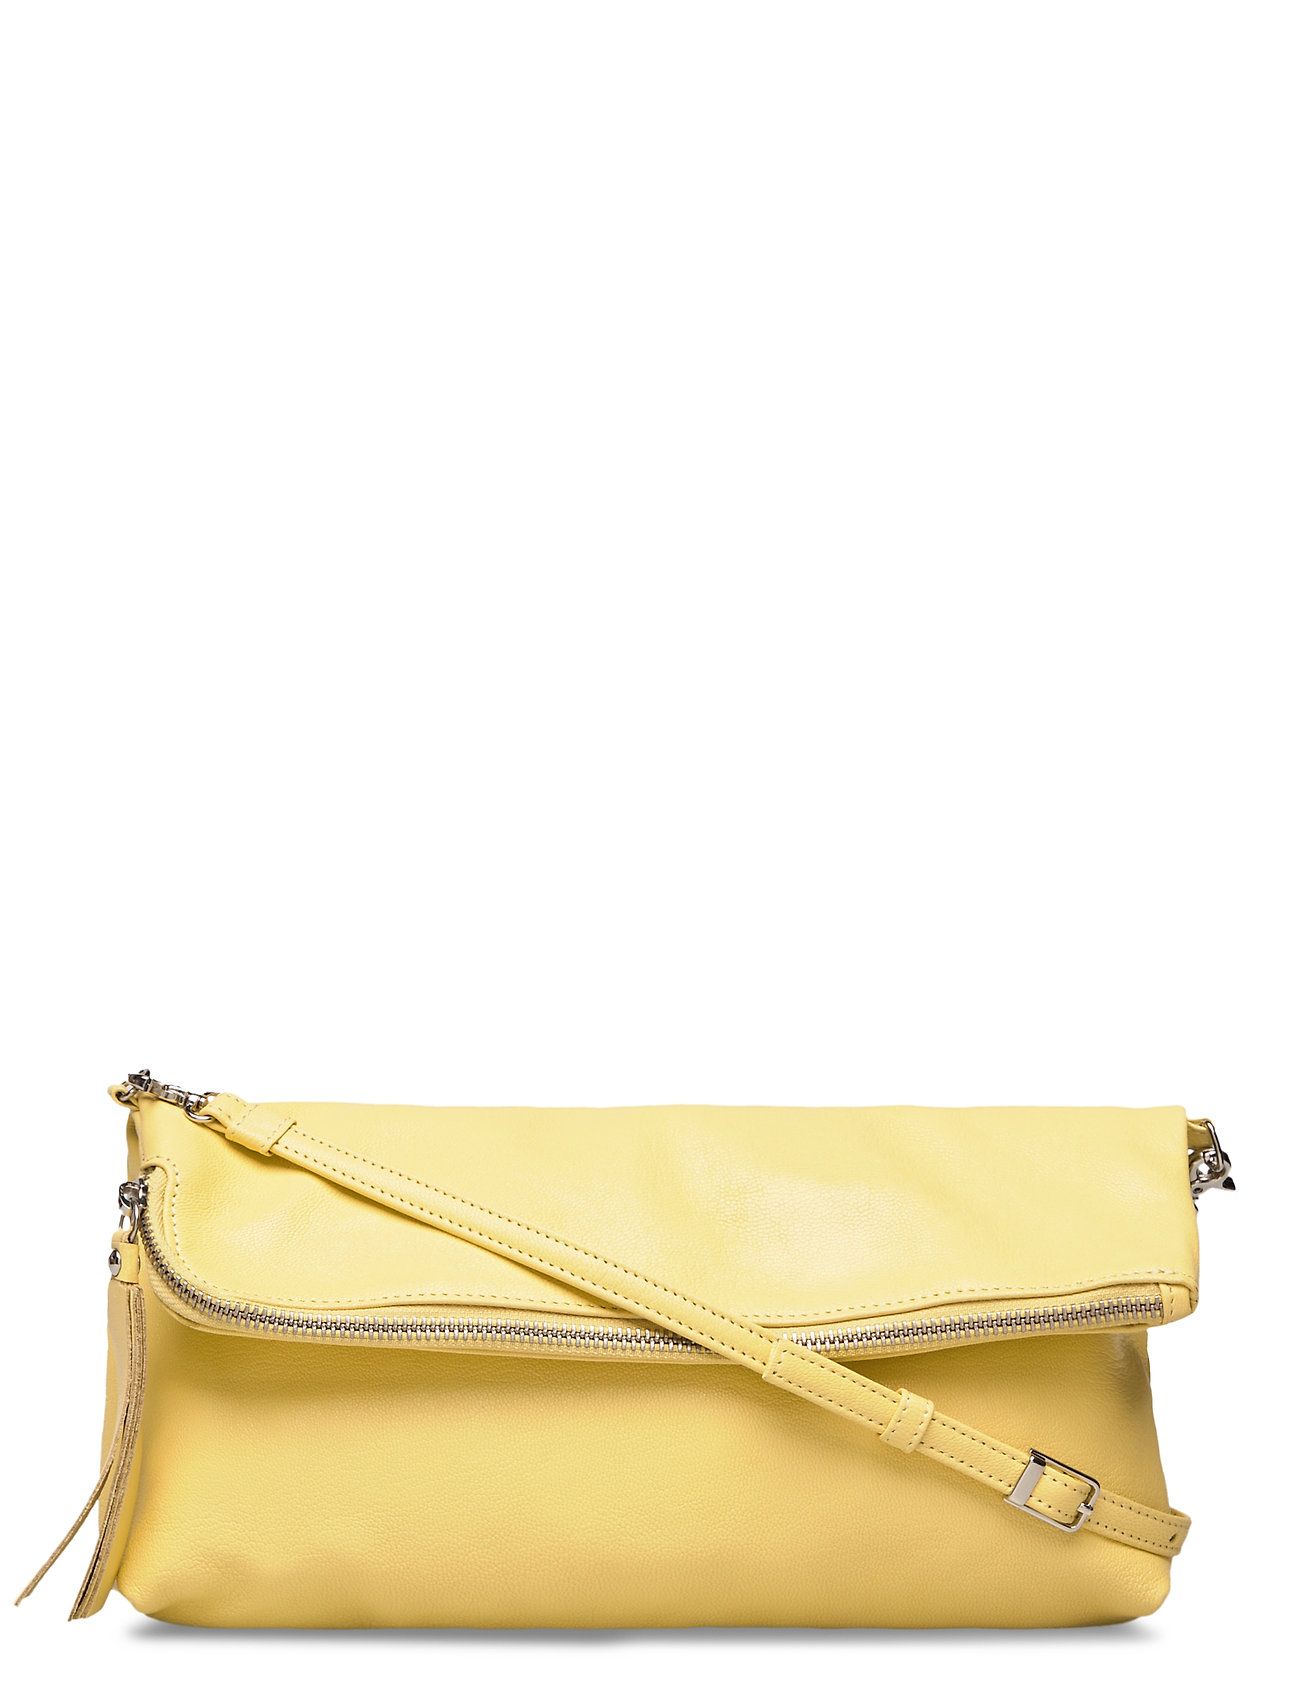 Image of Stefanie Large Pouch Bag Bags Small Shoulder Bags - Crossbody Bags Gul LUMI (3369206125)